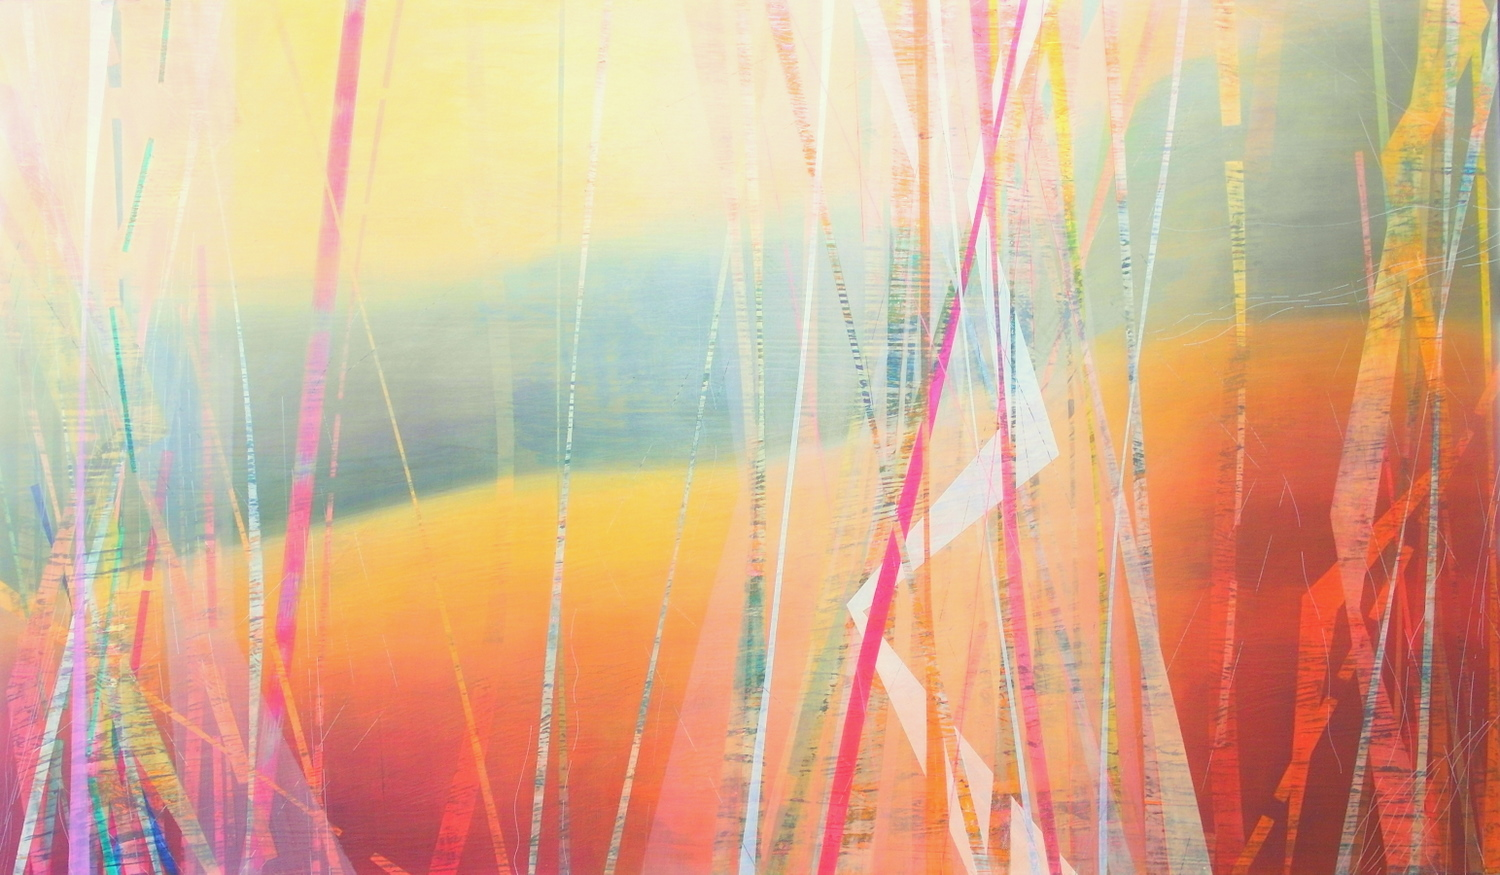 'departure V' 120 cm W x 70 cm H $̶3̶,̶4̶0̶0̶,̶-̶ SOLD